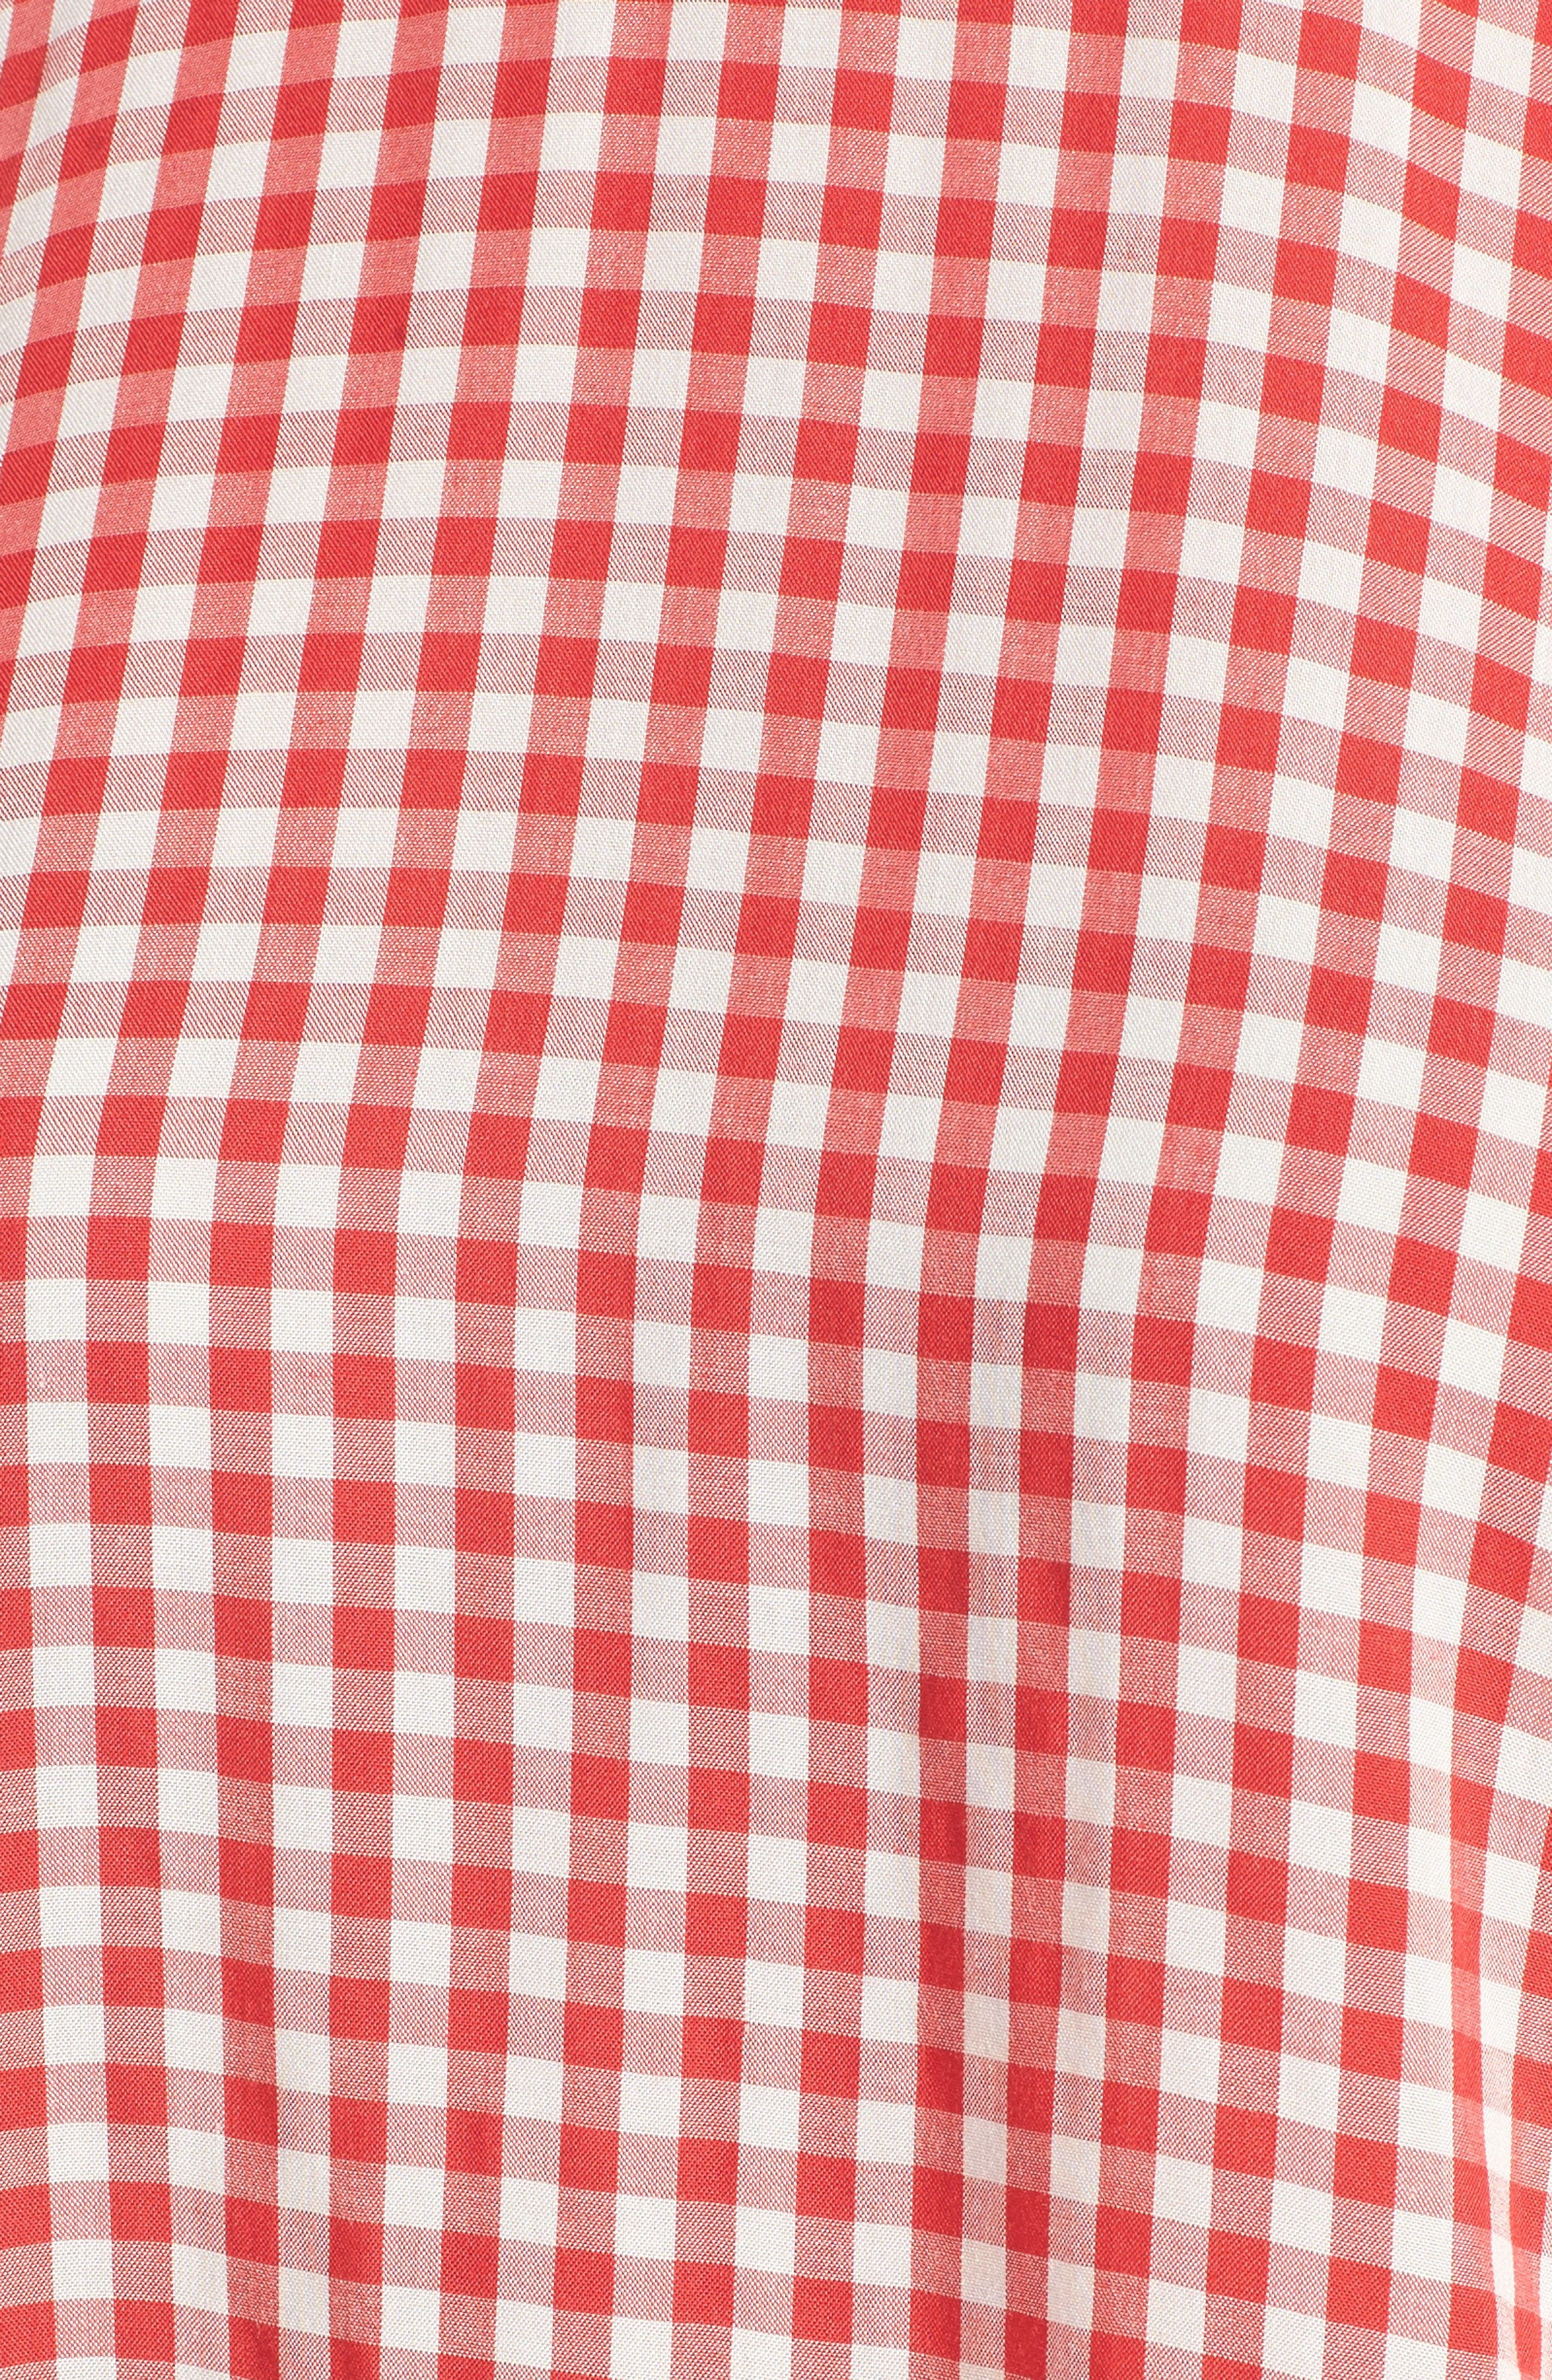 Ruffled Check Blouse,                             Alternate thumbnail 5, color,                             Red